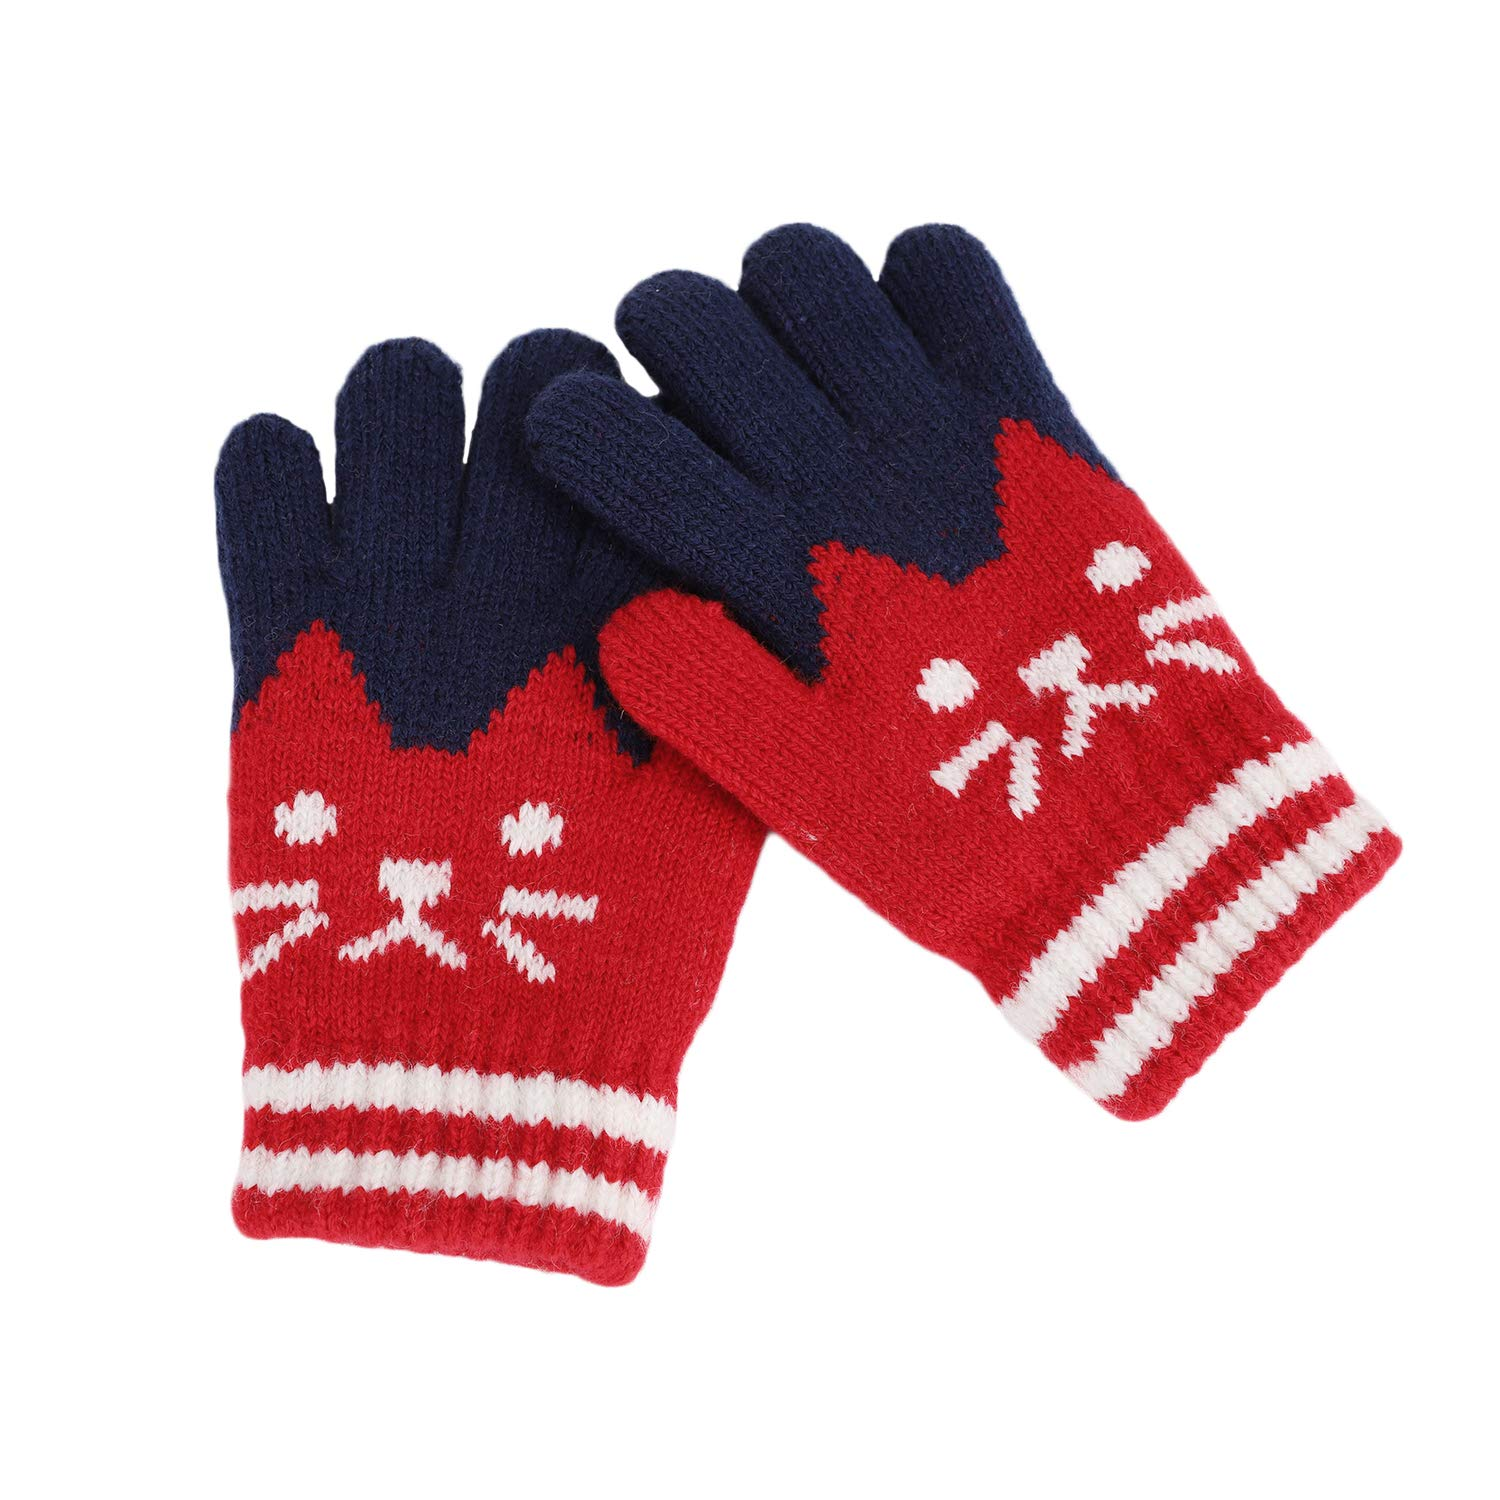 Toddler Kids Winter Warm Thick Full Finger Gloves Children Boys Girls Cute Cartoon Cat Magic Ski Gloves Outdoor Cycling Wool Knitted Thermal Gloves Mittens